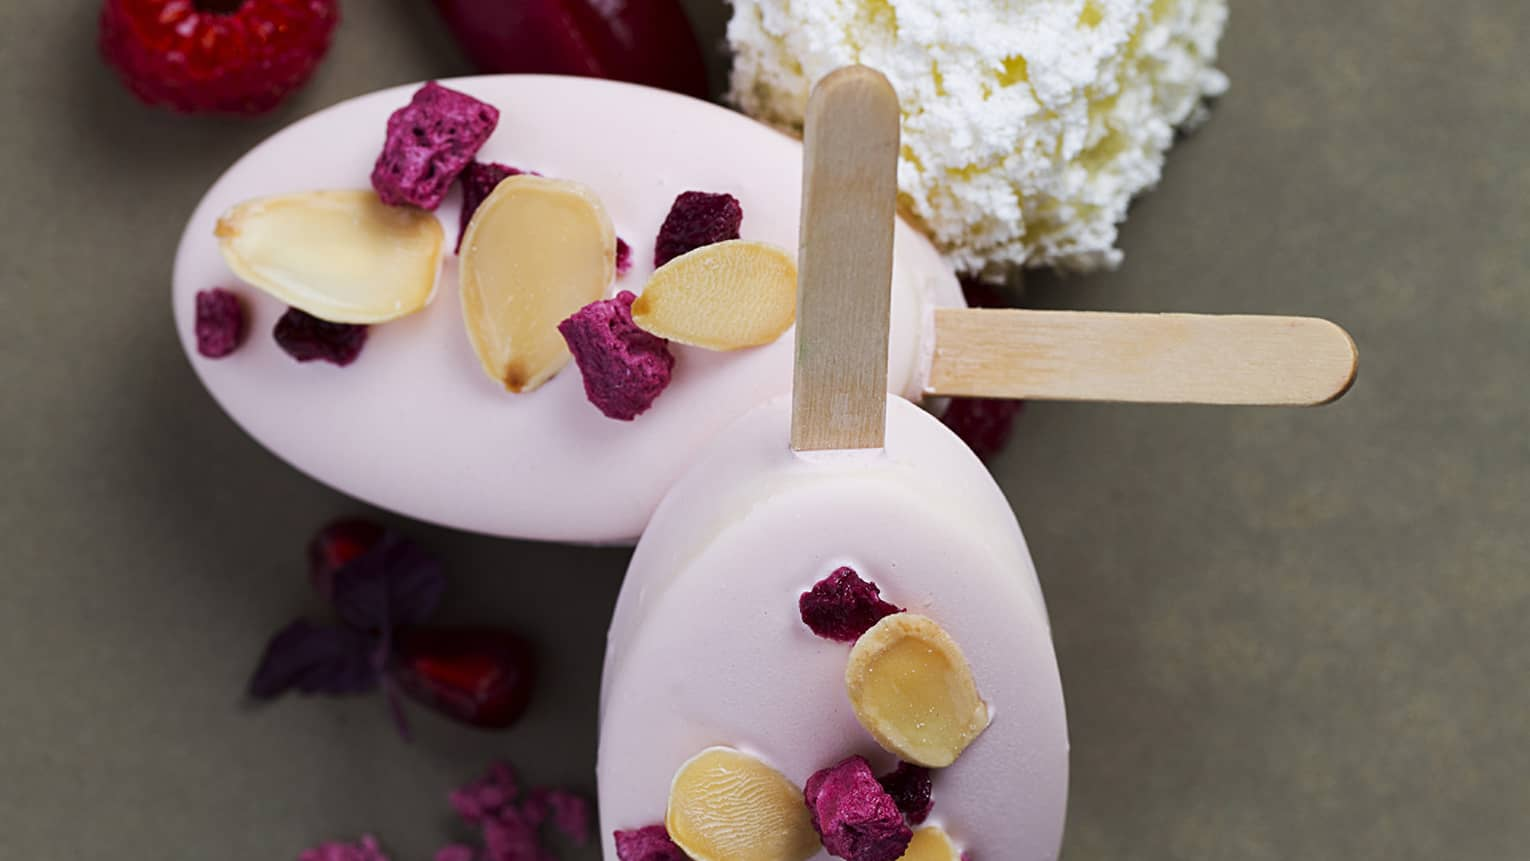 Two pink popsicles lay crossed on a plate garnished with raspberries and pomegranate seeds